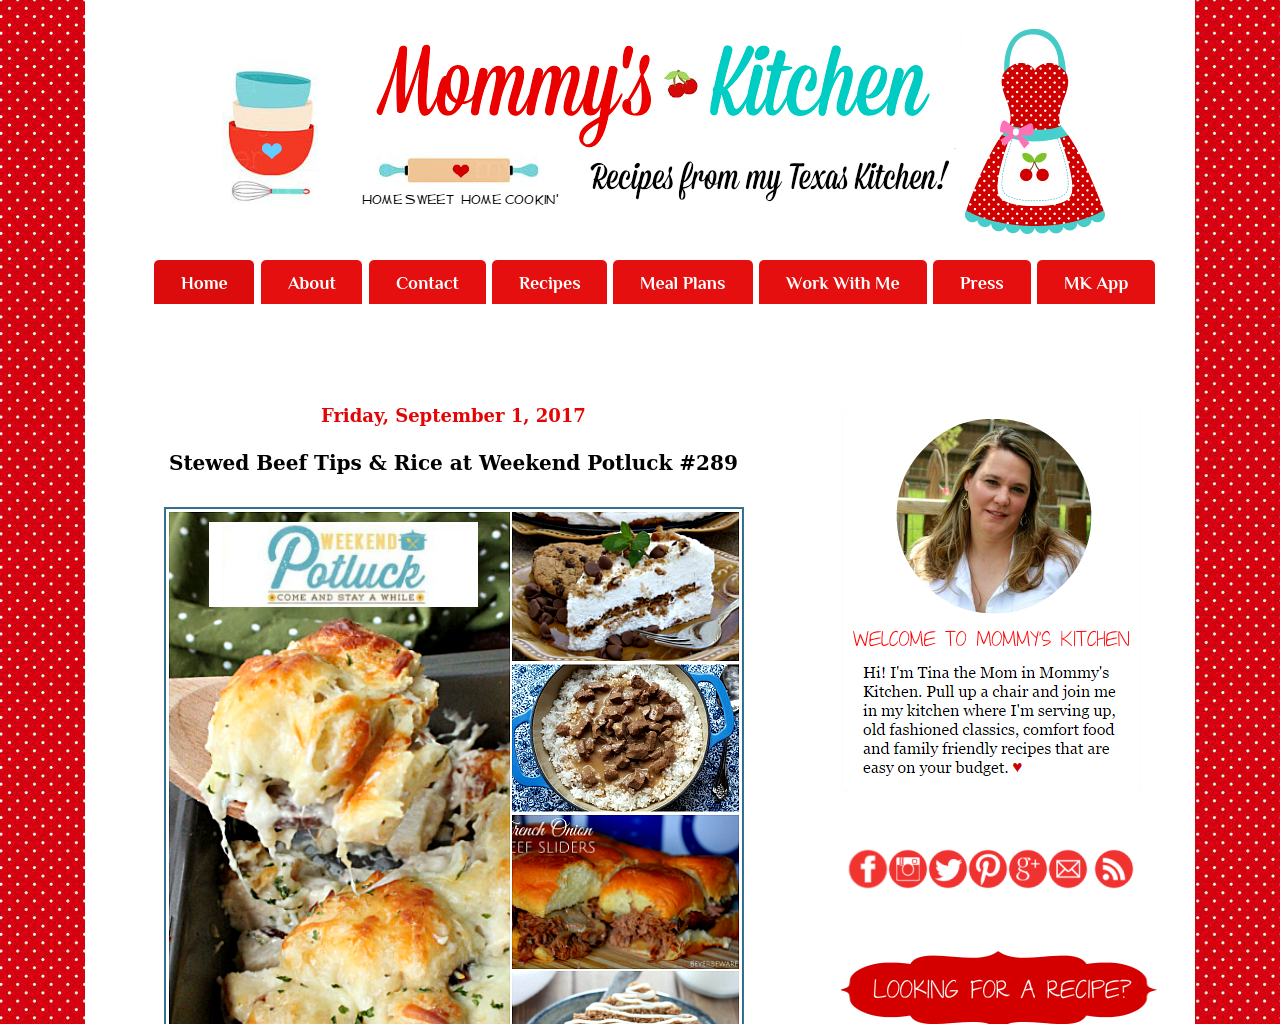 Mommy's-Kitchen-Advertising-Reviews-Pricing